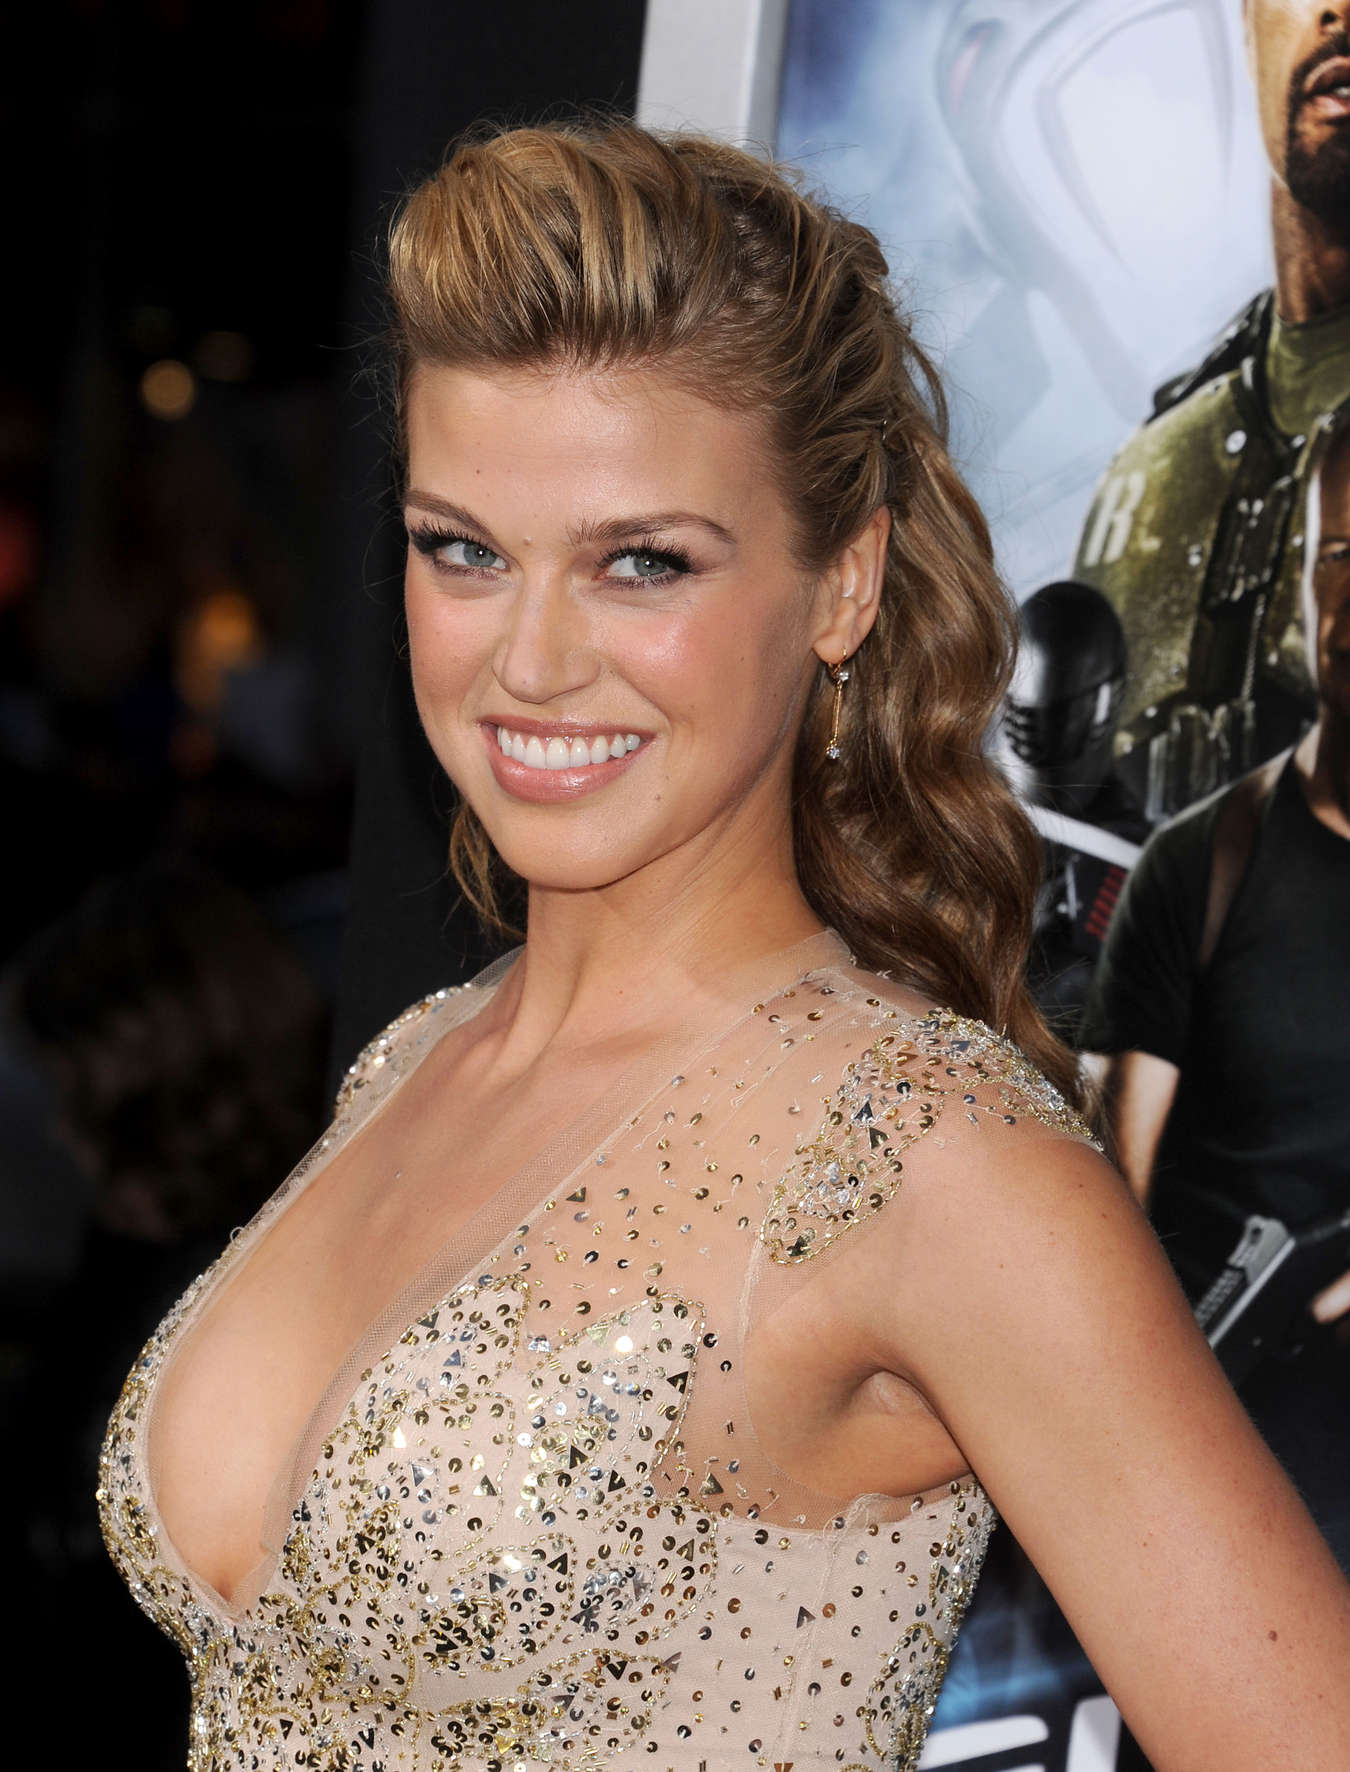 17 Best images about Adrianne Palicki on Pinterest